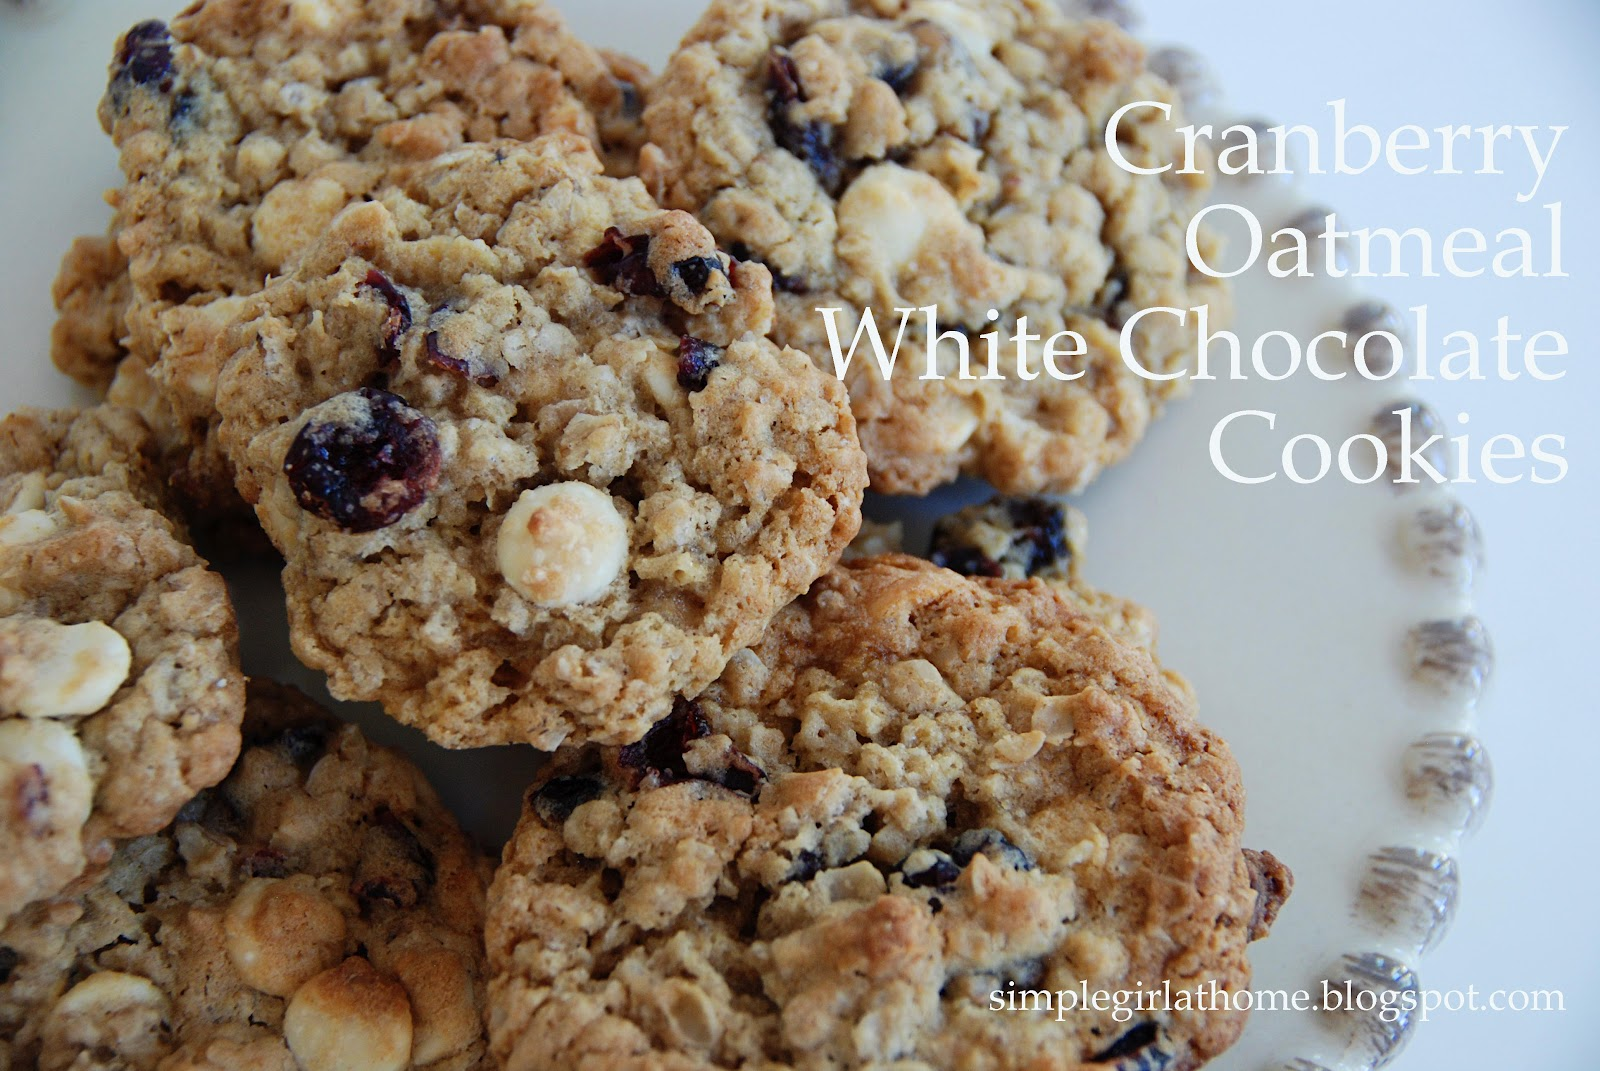 Simple Girl: Cranberry Oatmeal White Chocolate Cookies